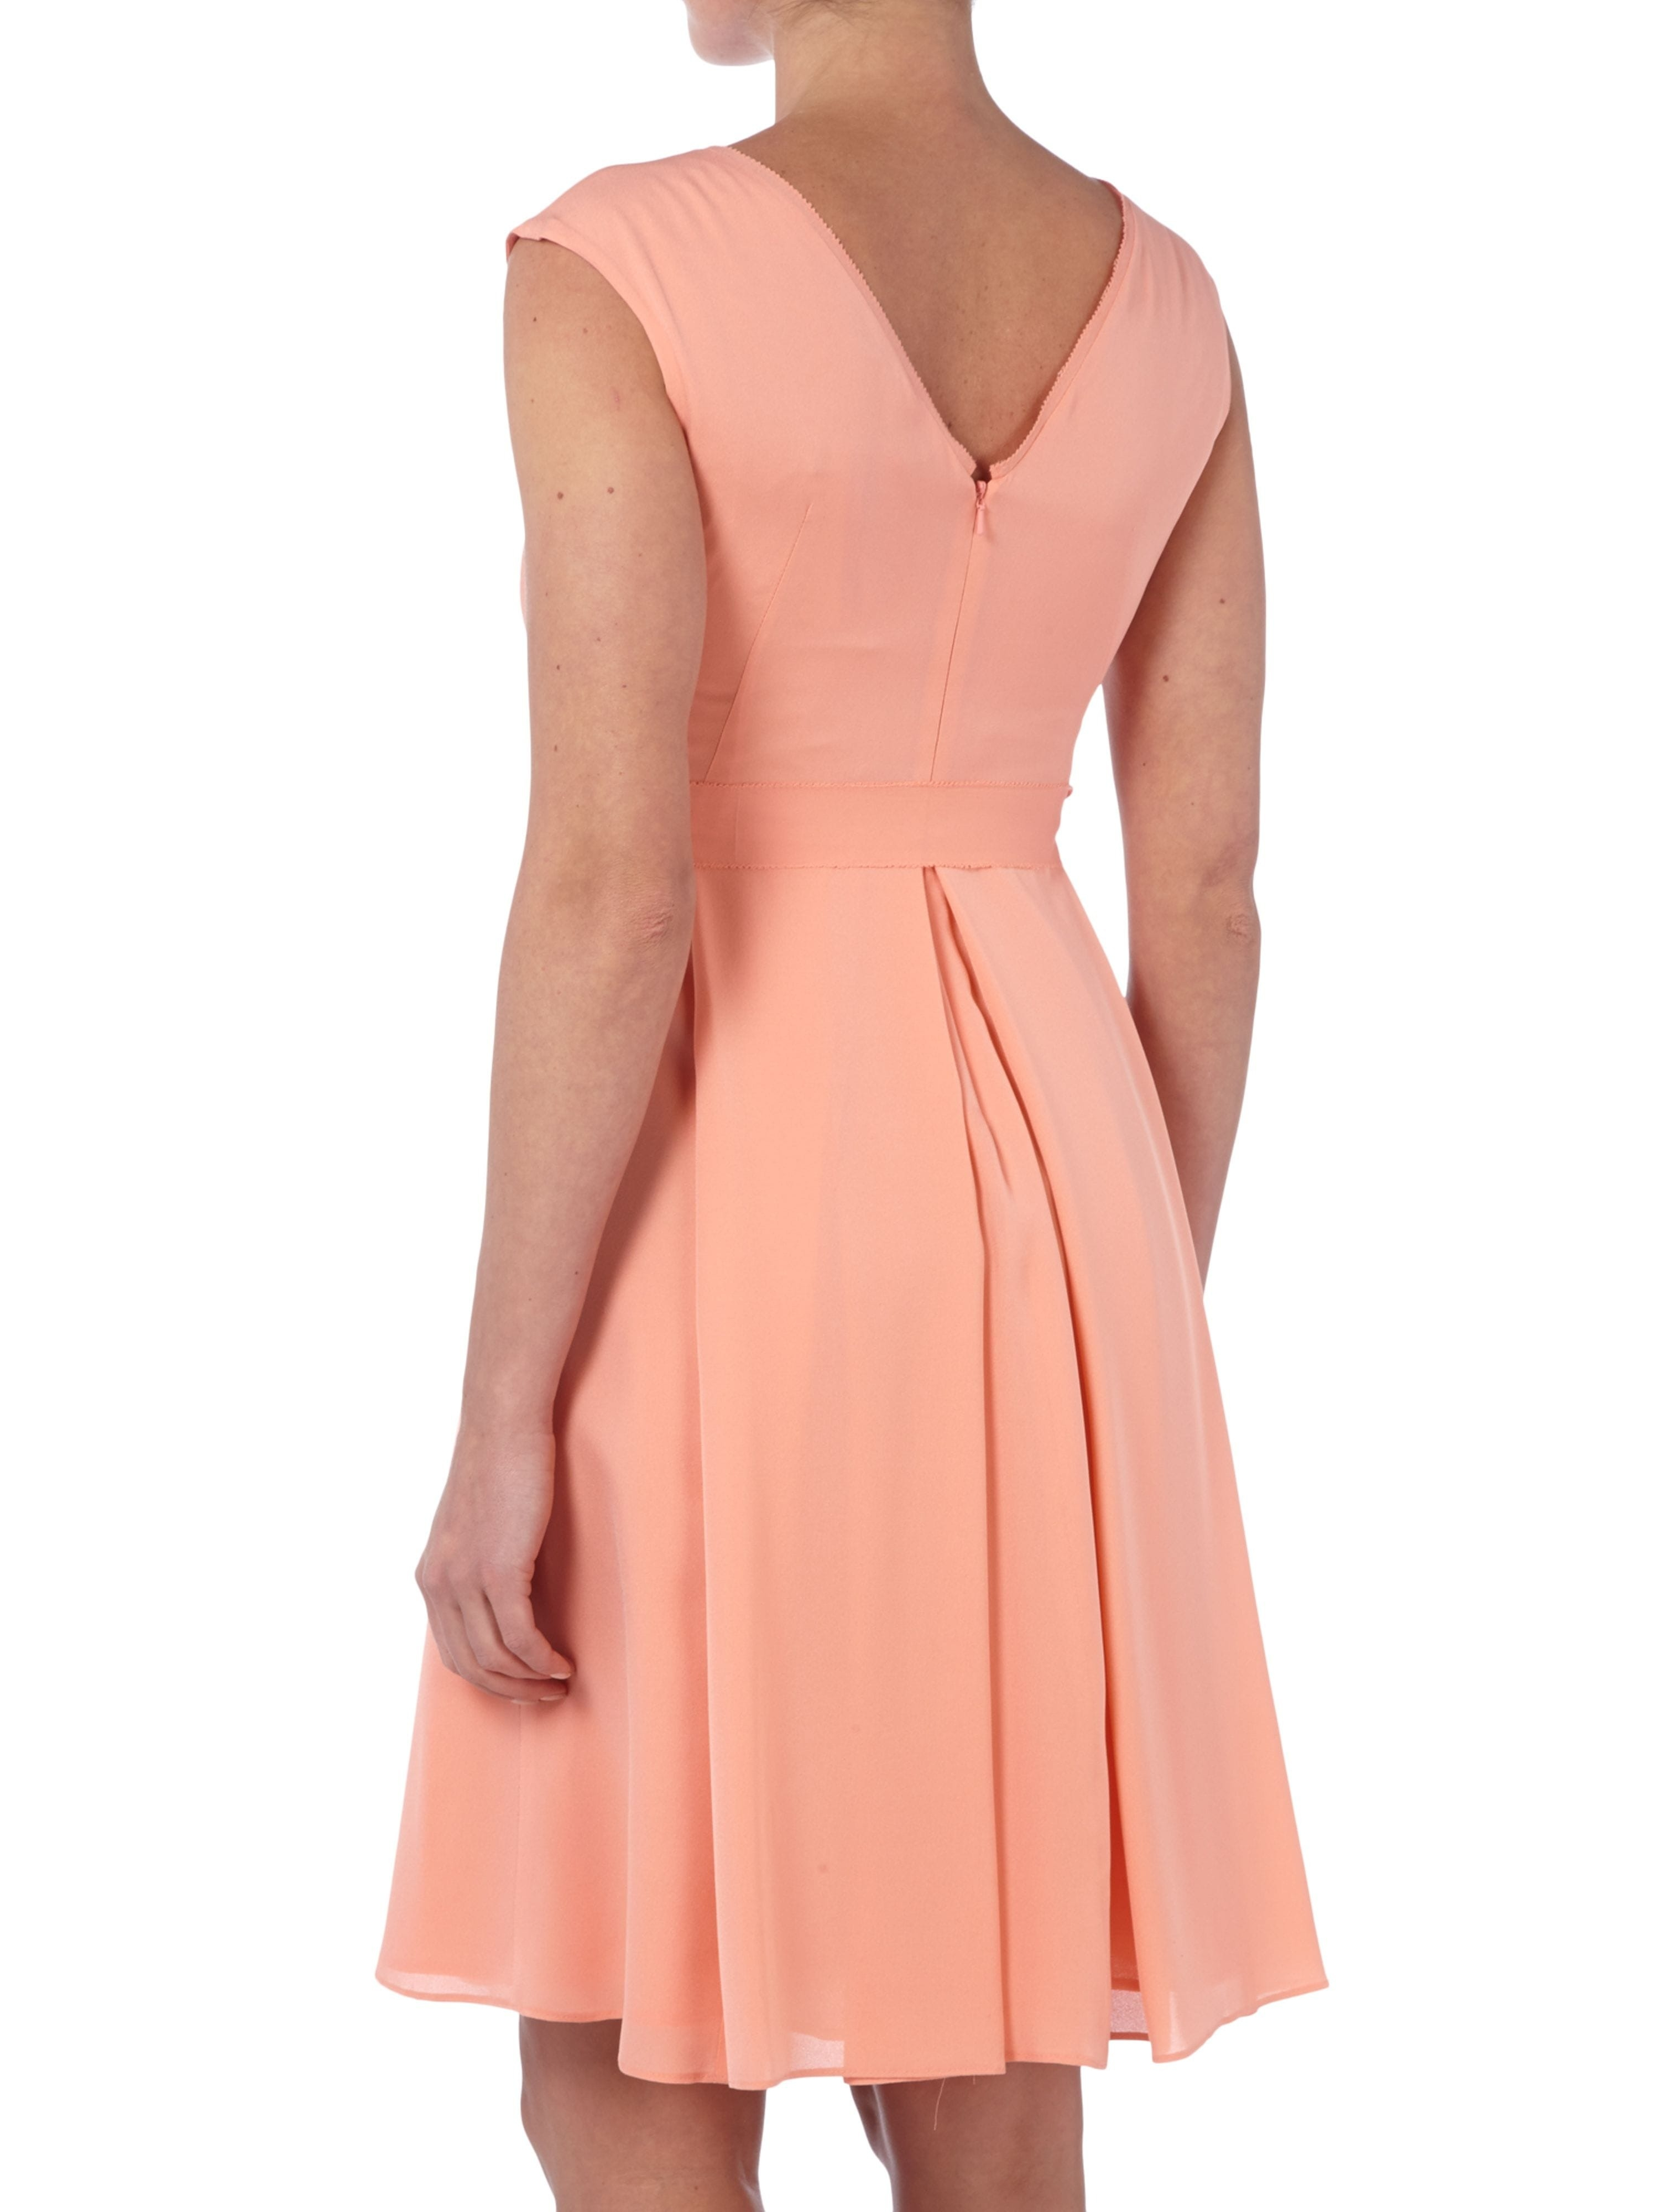 luxus kleid lachs boutique - abendkleid